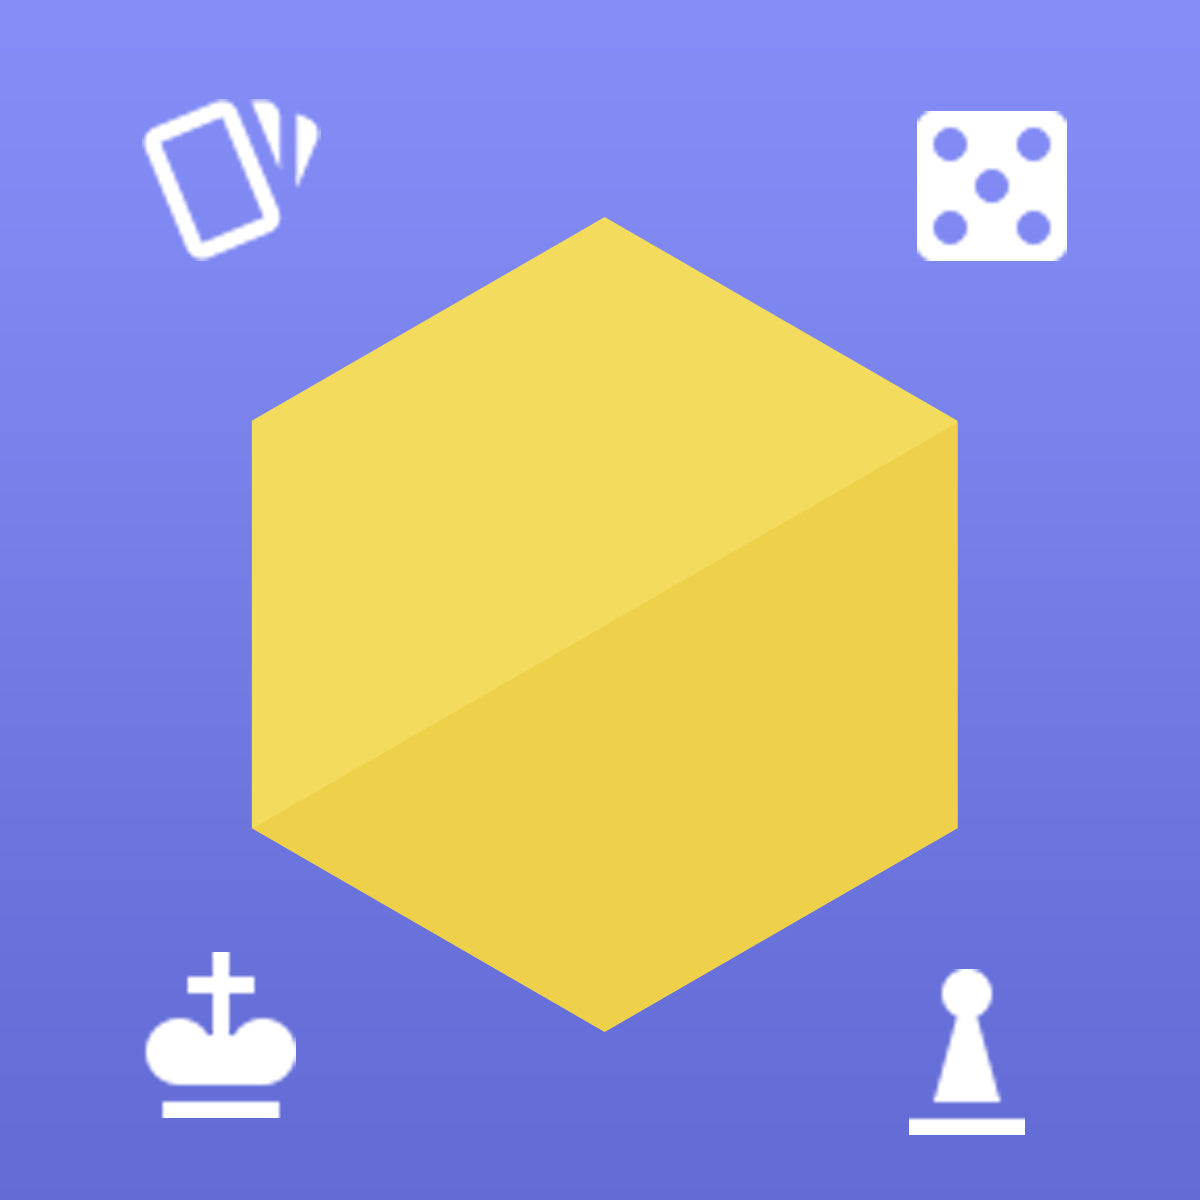 Hire Shopify Experts to integrate Board Game Atlas Listings app into a Shopify store